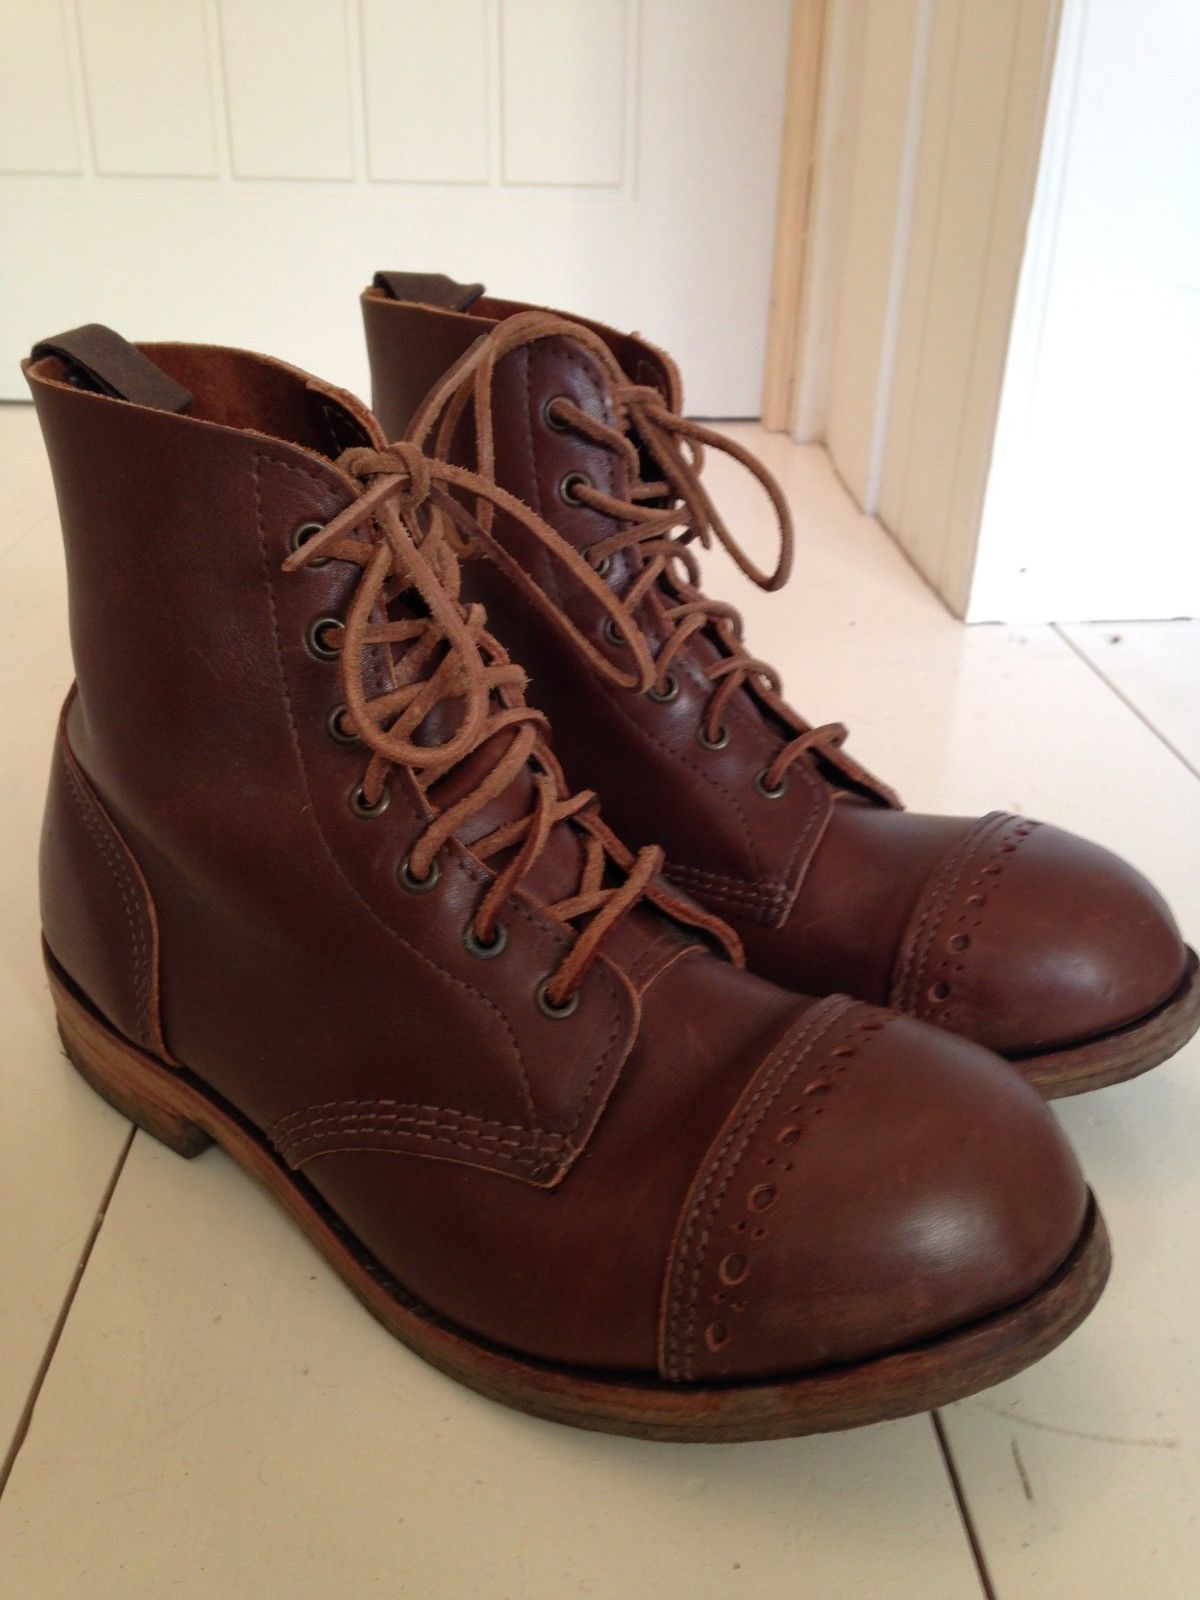 78PTC Mens Leather Derby Work Boot